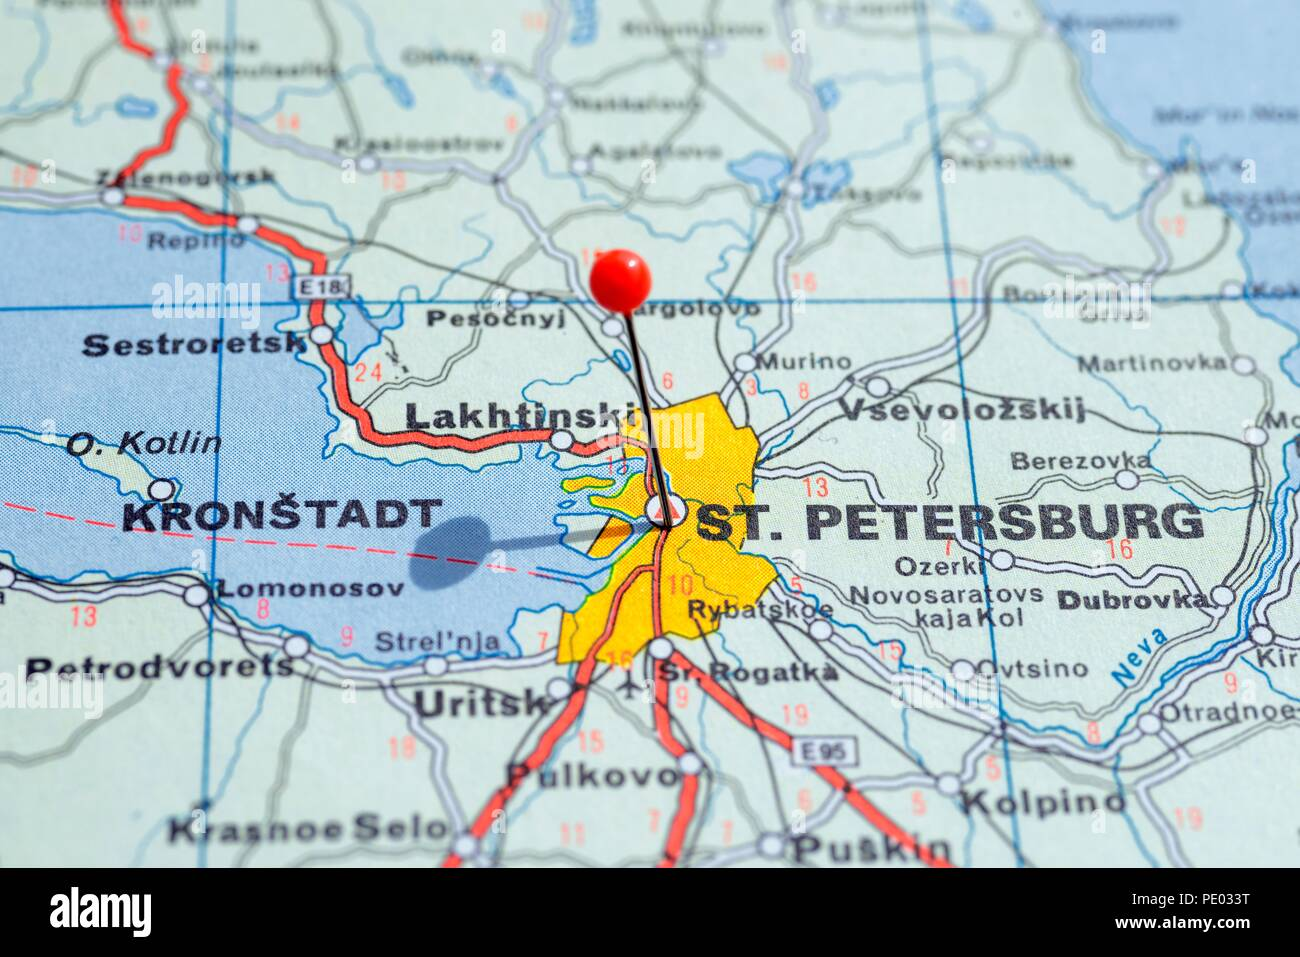 st petersburg map of europe Sweden Stockholm, 07 April 2018: European cities on map series